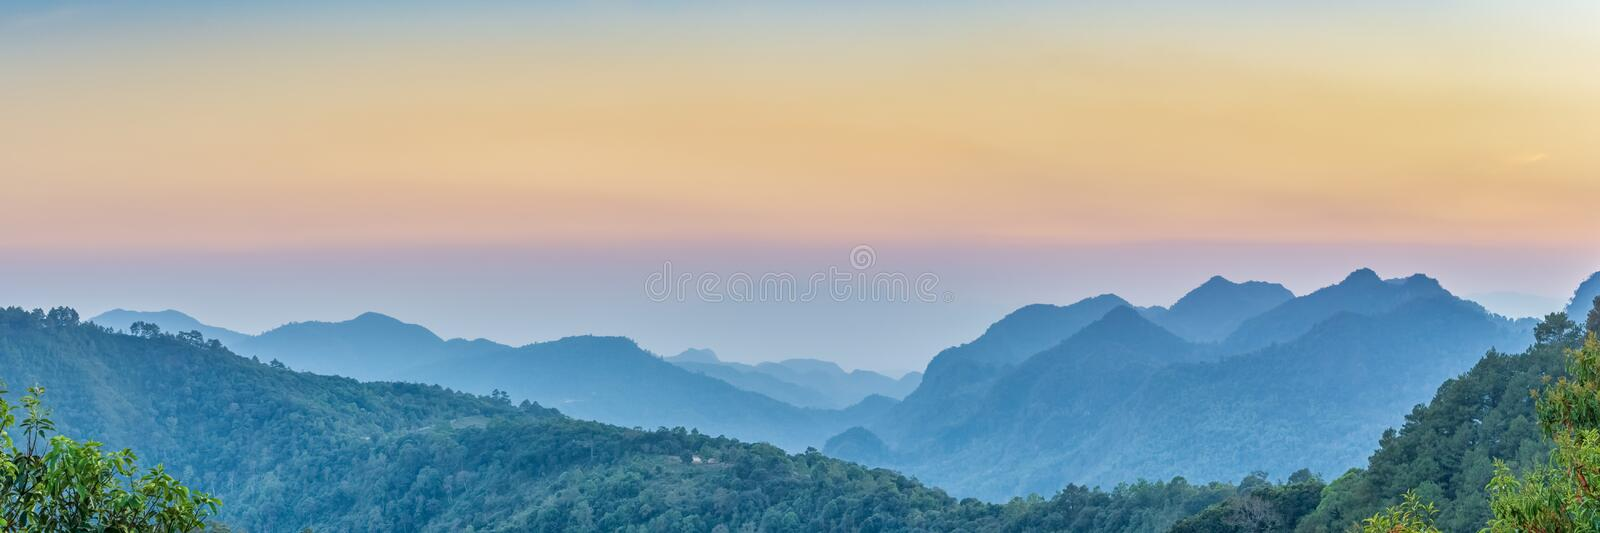 Nature Web Banner. Mountain view sunset panorama view of many hill and green forest cover with soft mist with colorful sky royalty free stock images